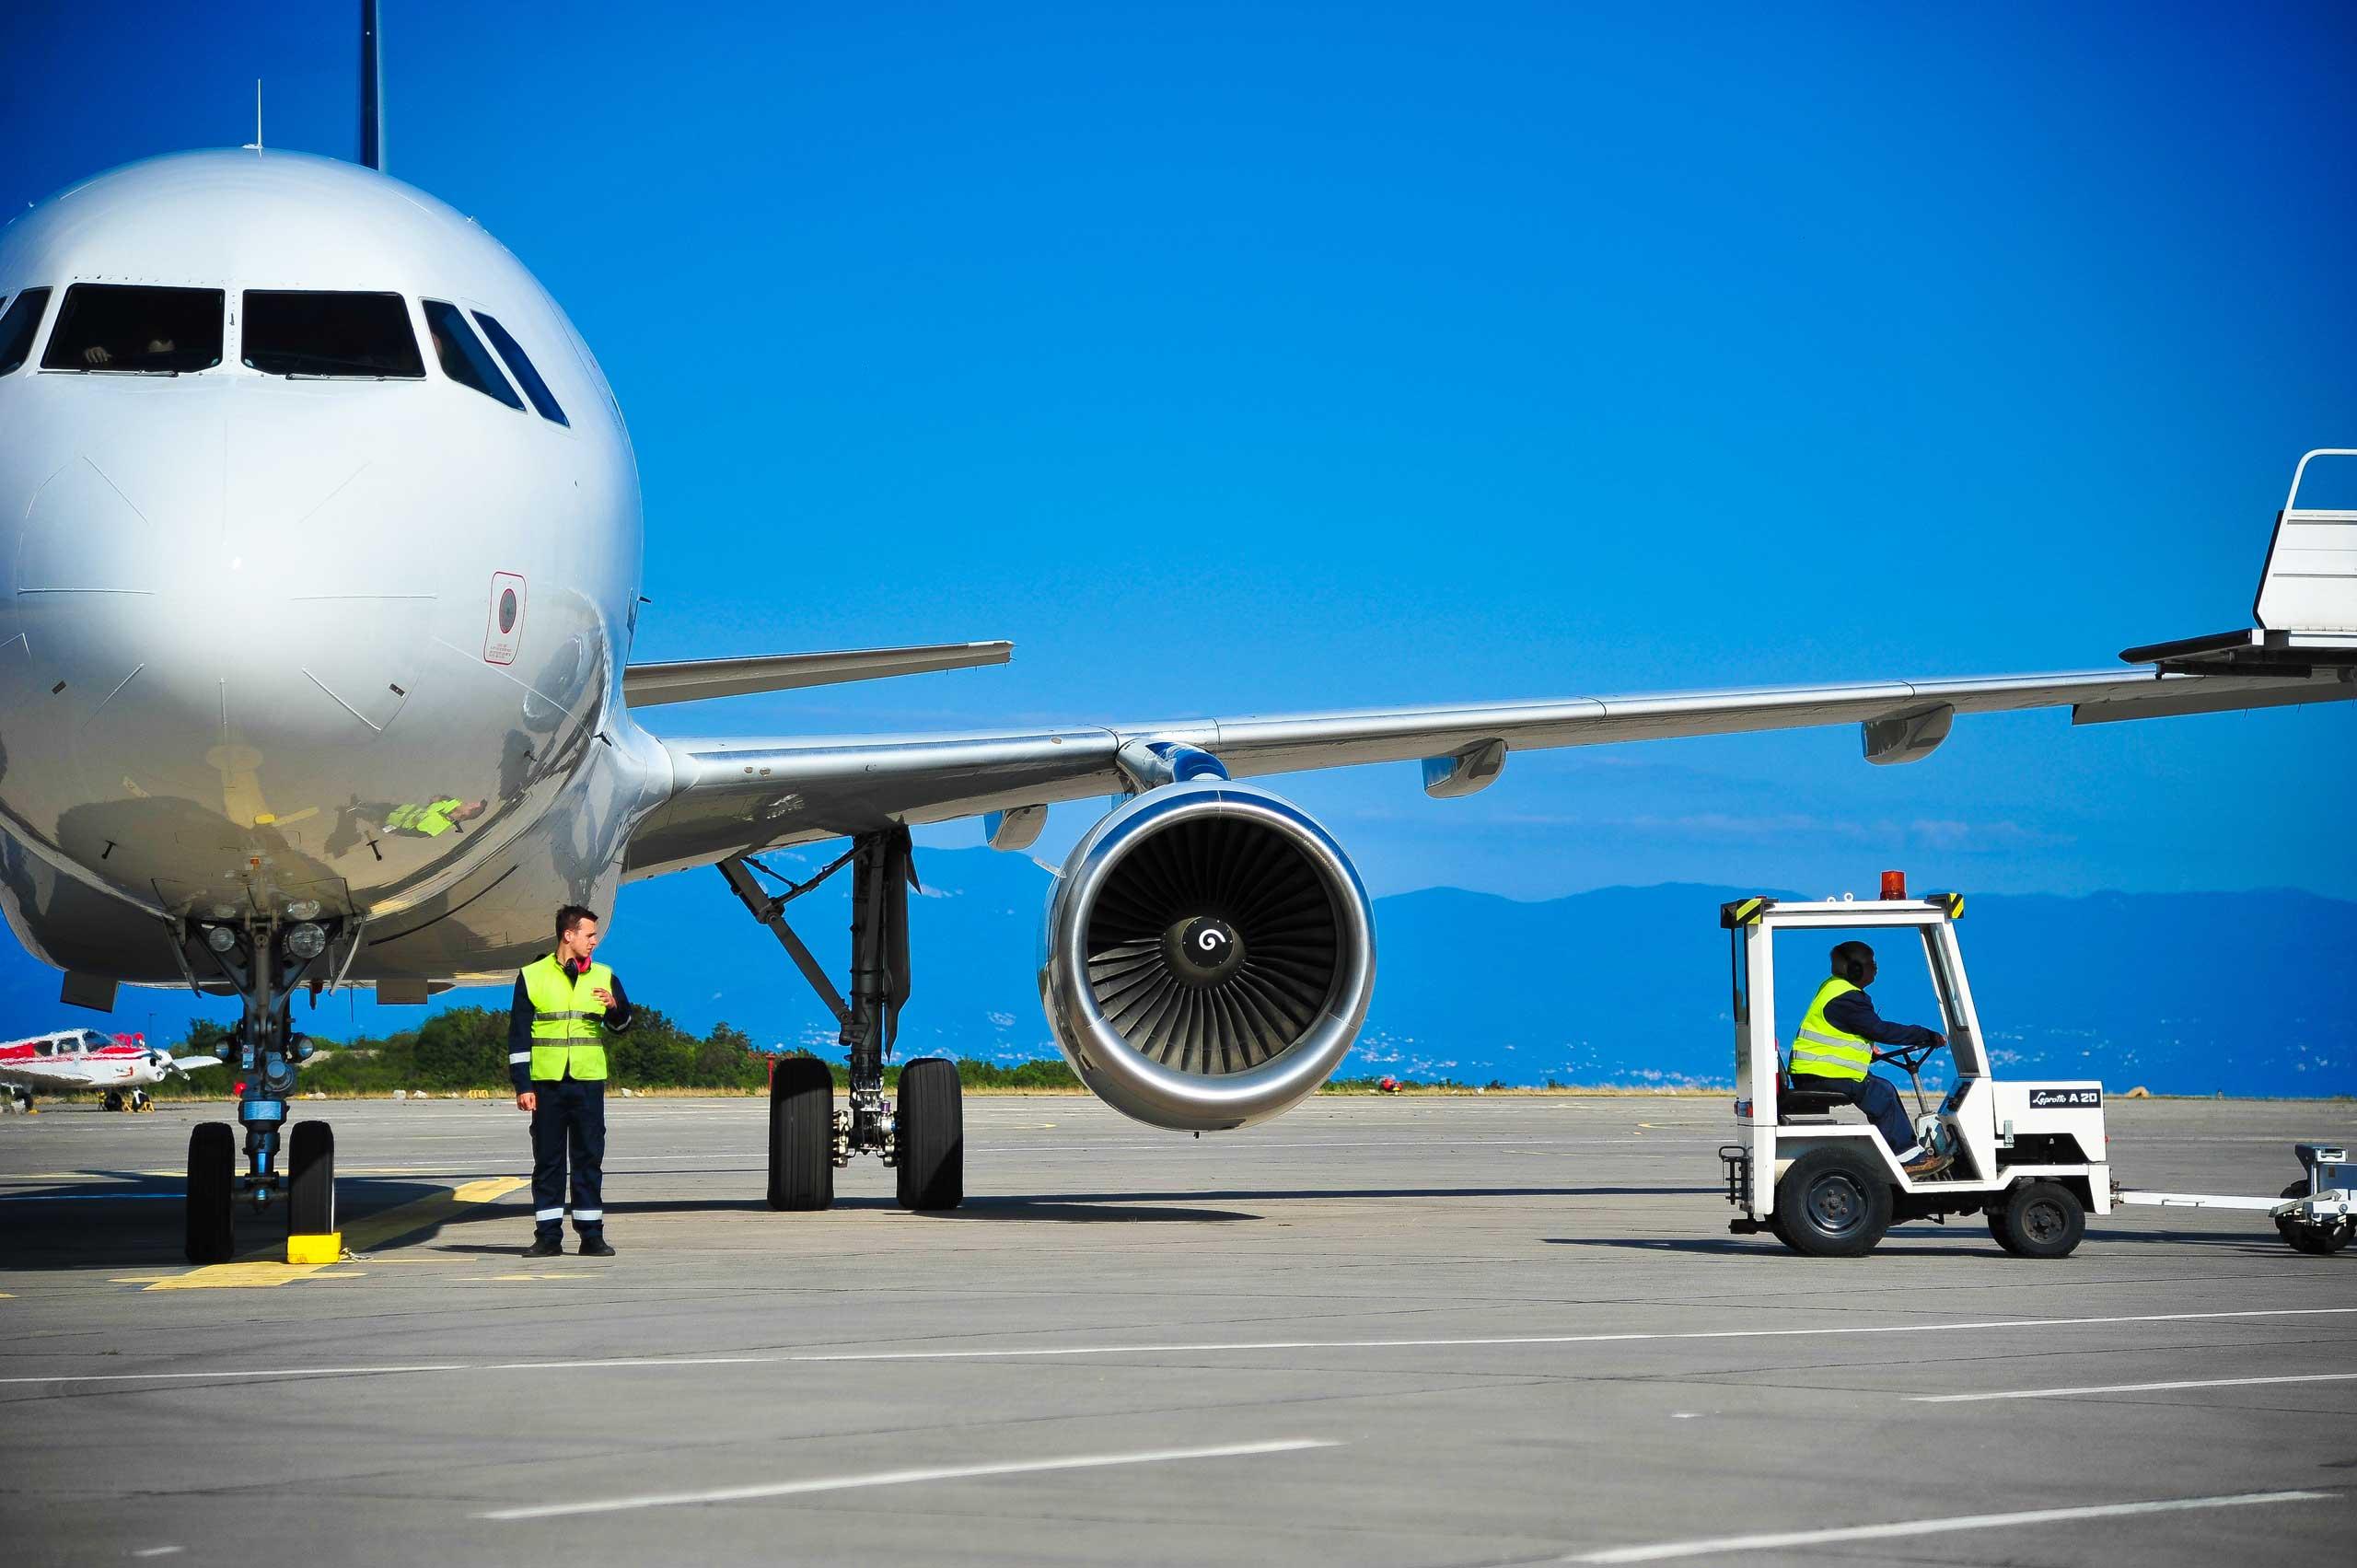 Reliable and Secure Services - Airport Rijeka